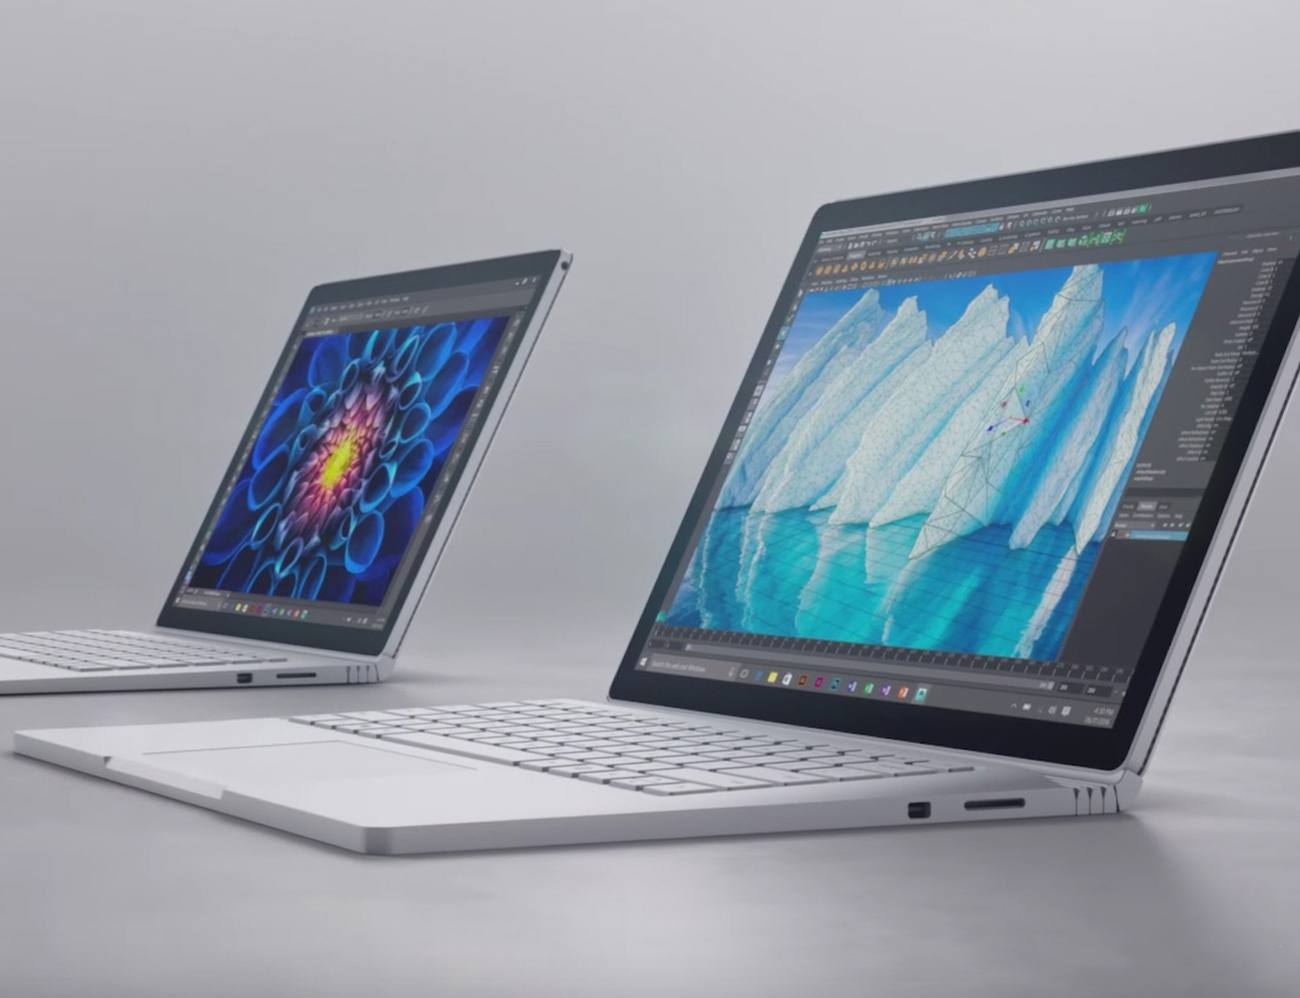 New Surface Book With Performance Base by Microsoft